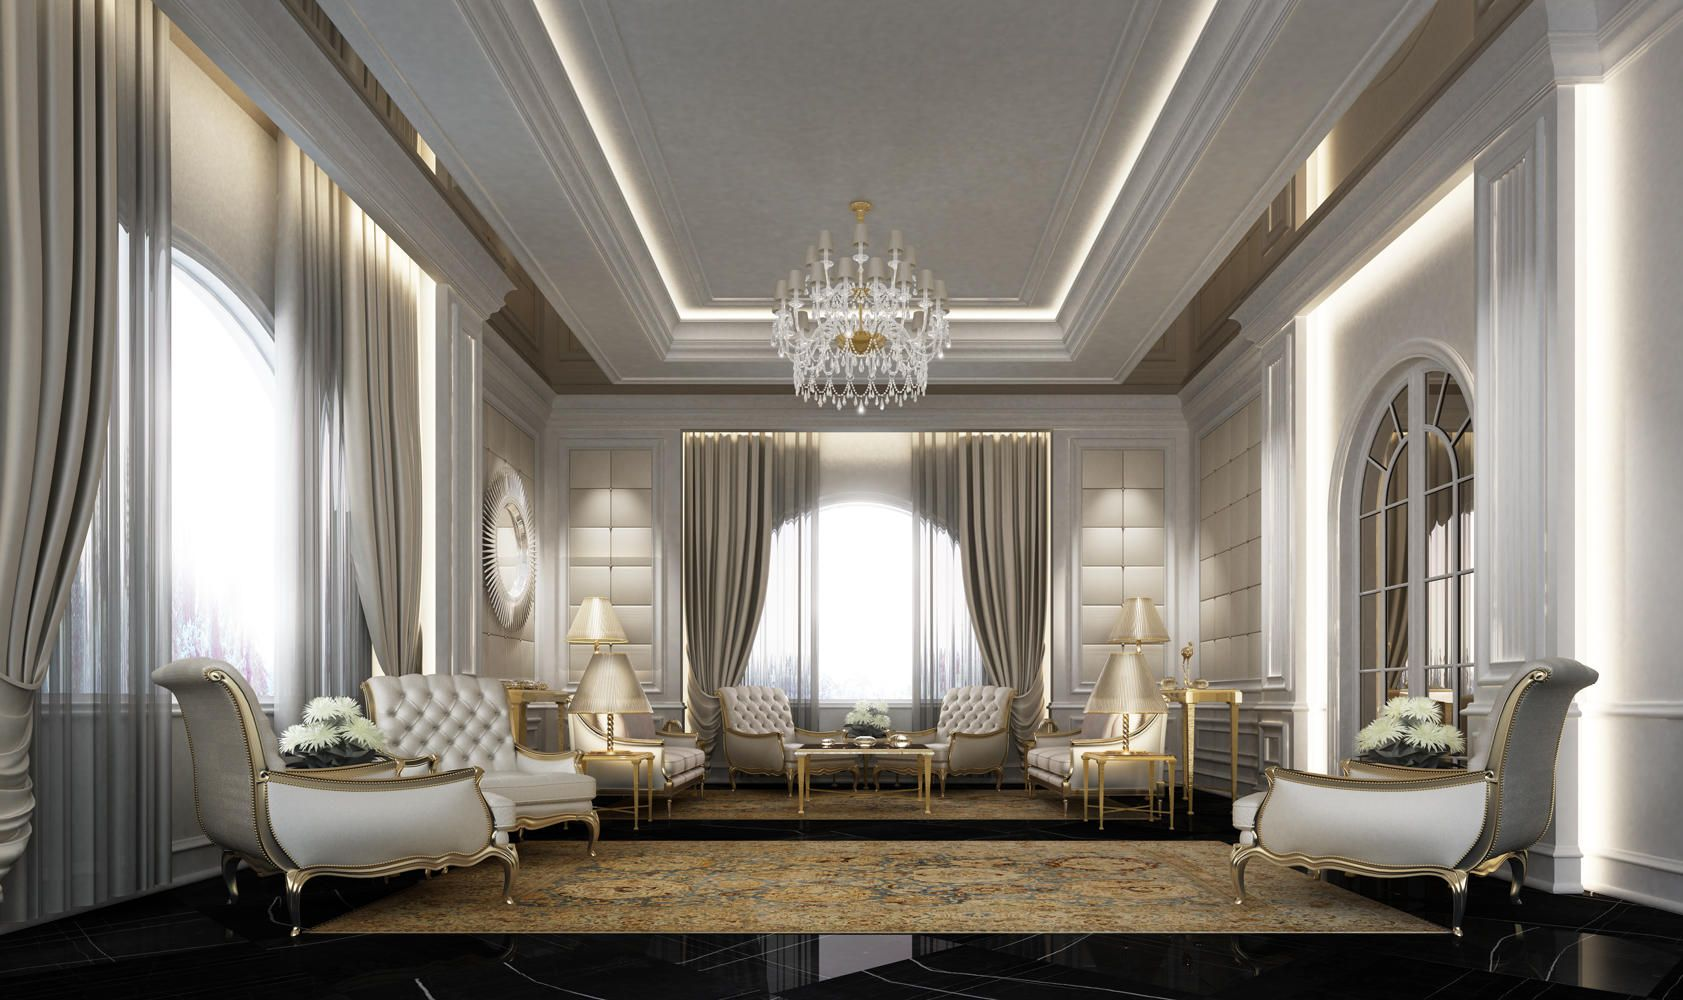 Ions Interior Design Dubai arabic majlis designs | ions design | interior design dubai